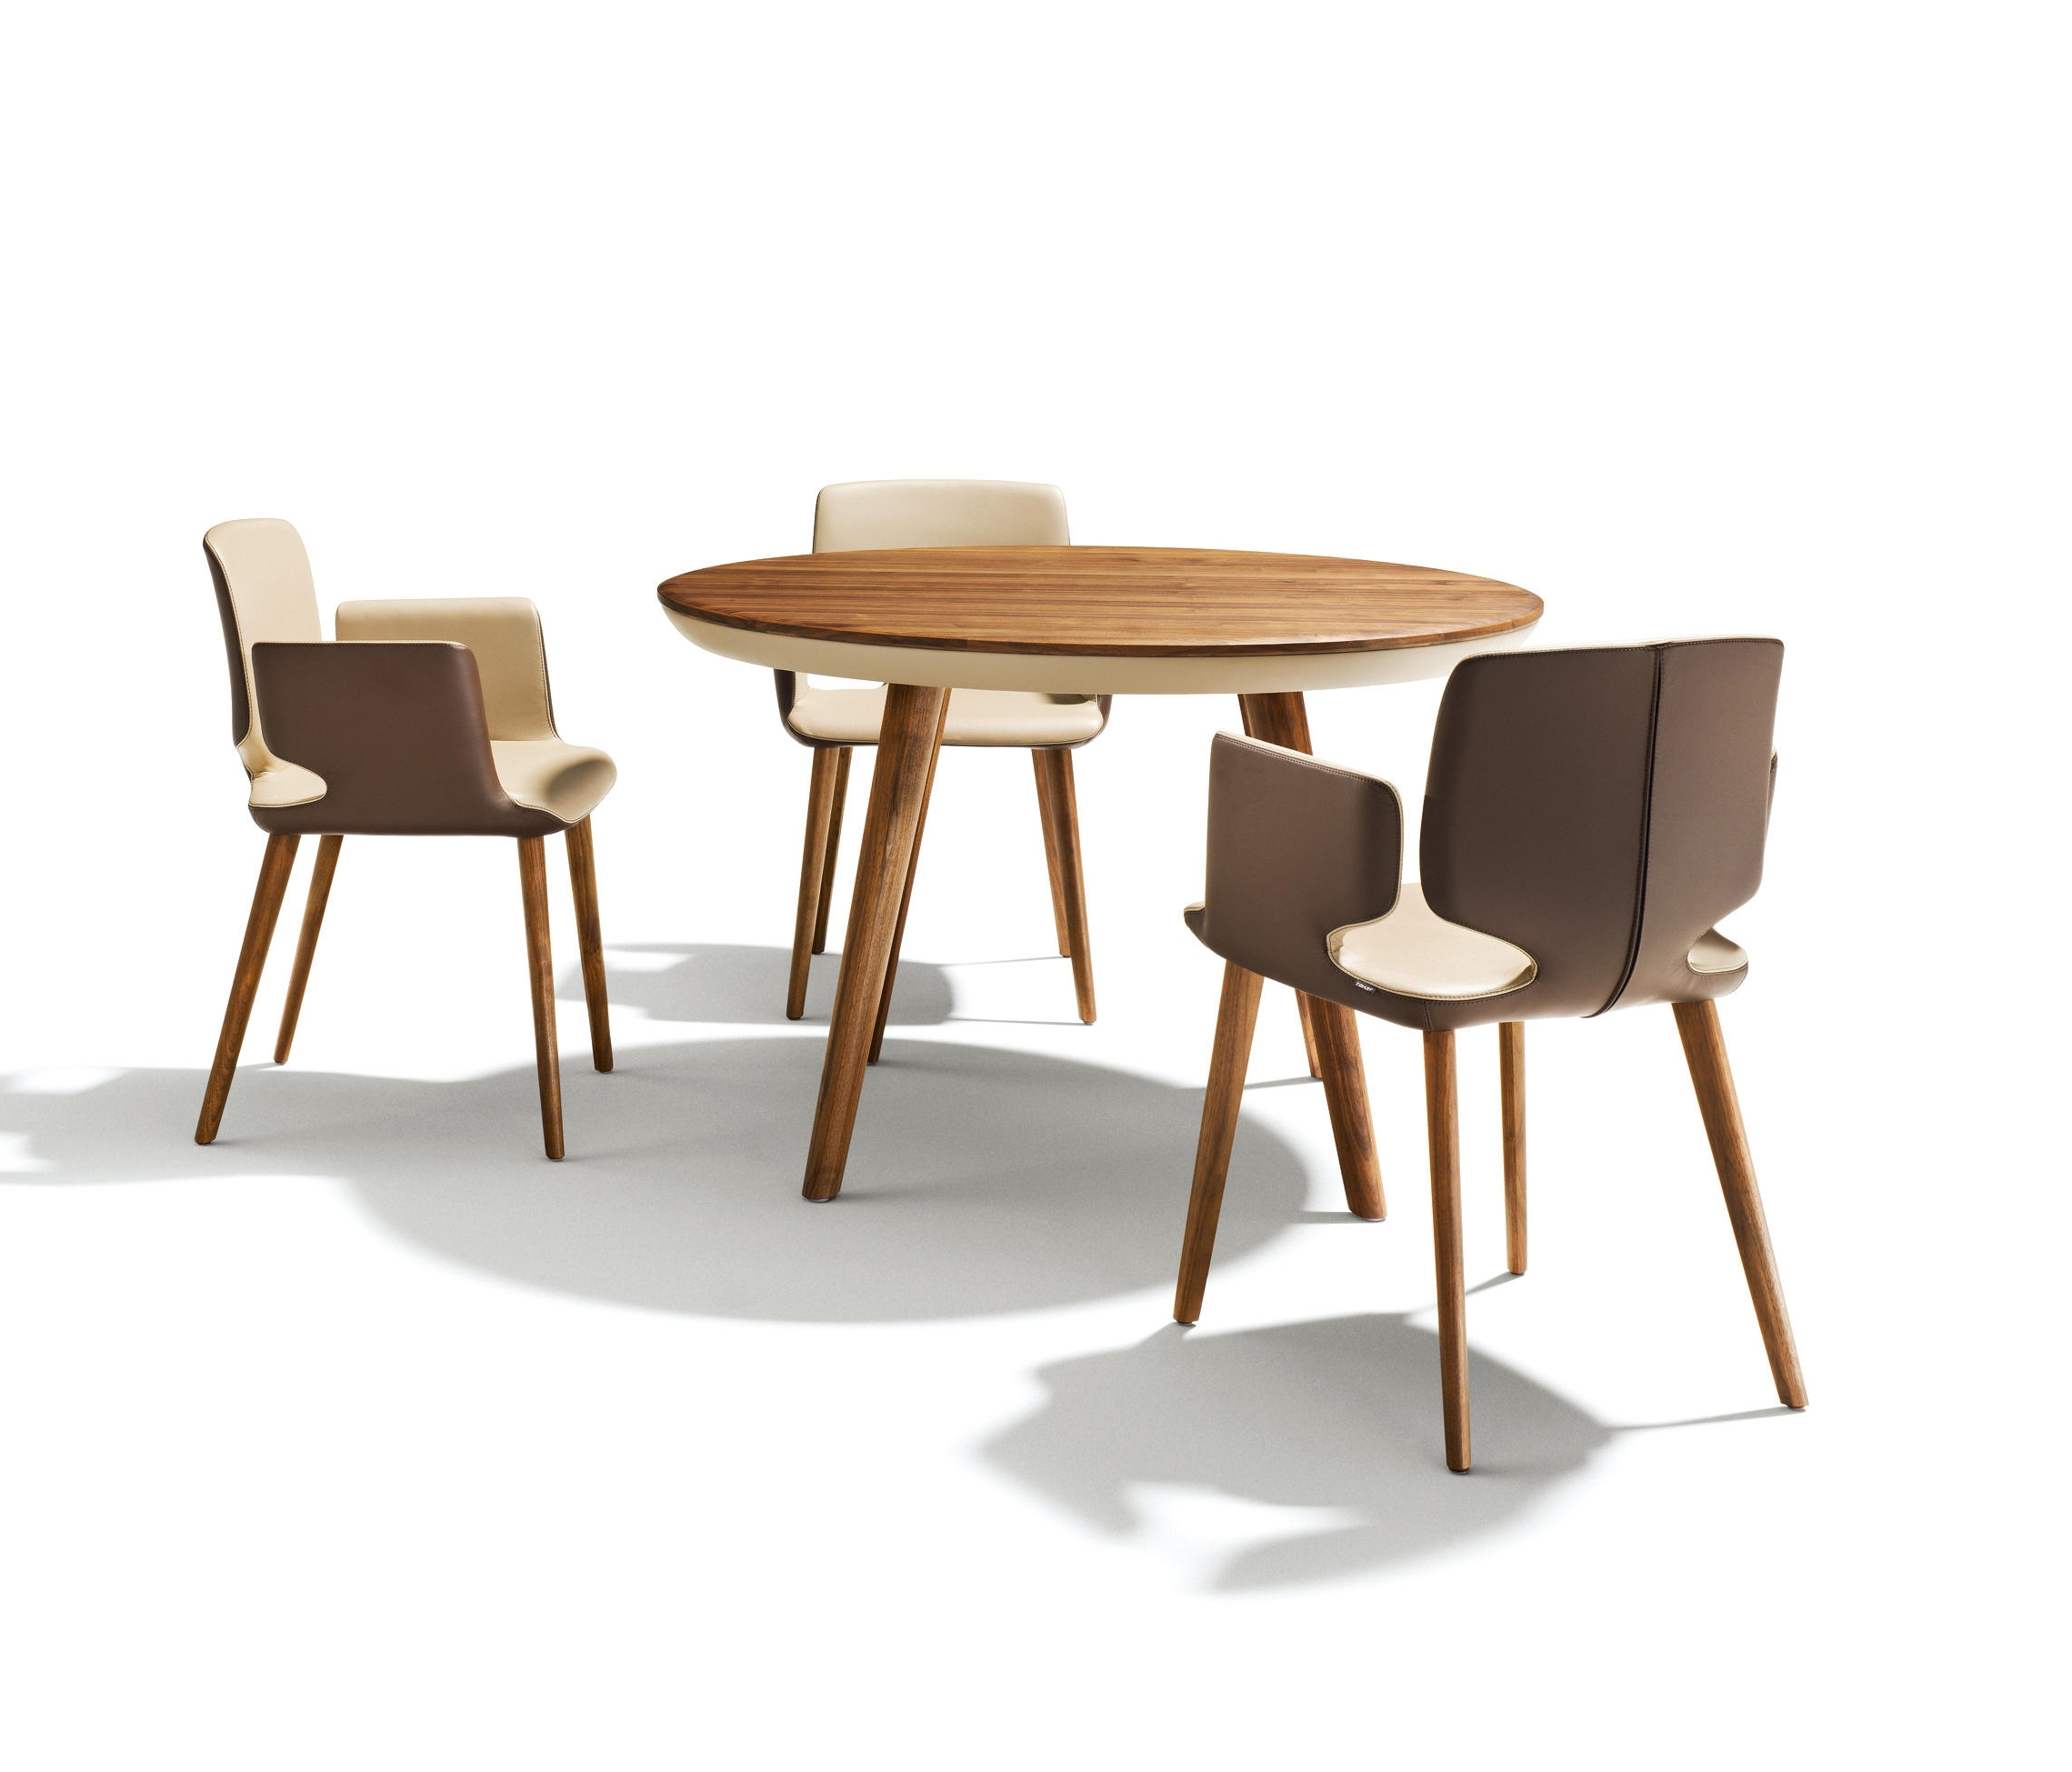 Architonic Intended For Non Wood Dining Tables (View 3 of 25)